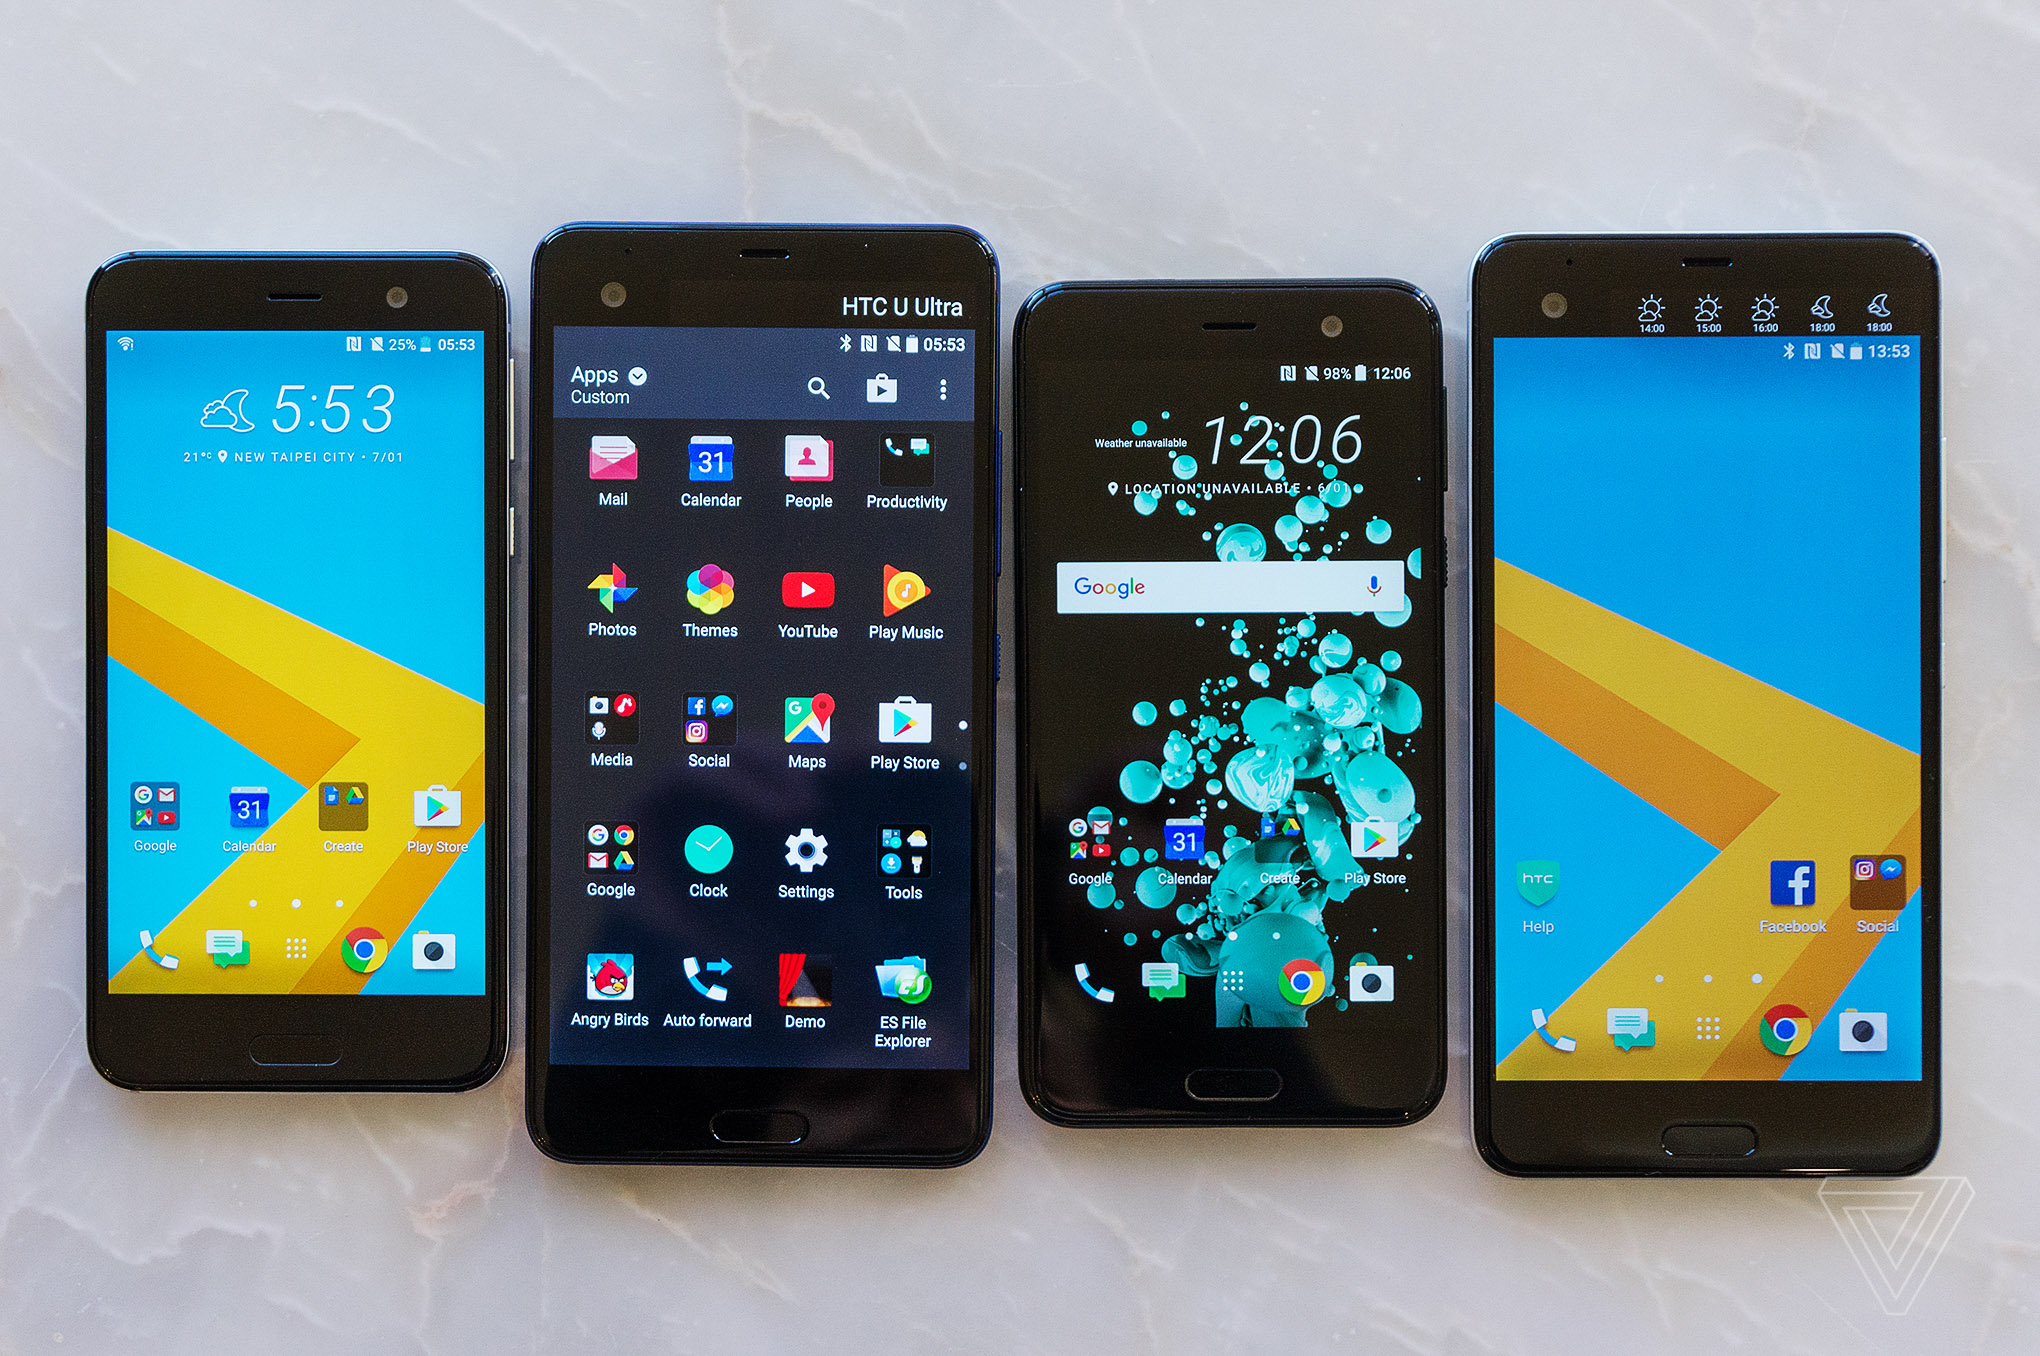 HTC's U Play and U Ultra